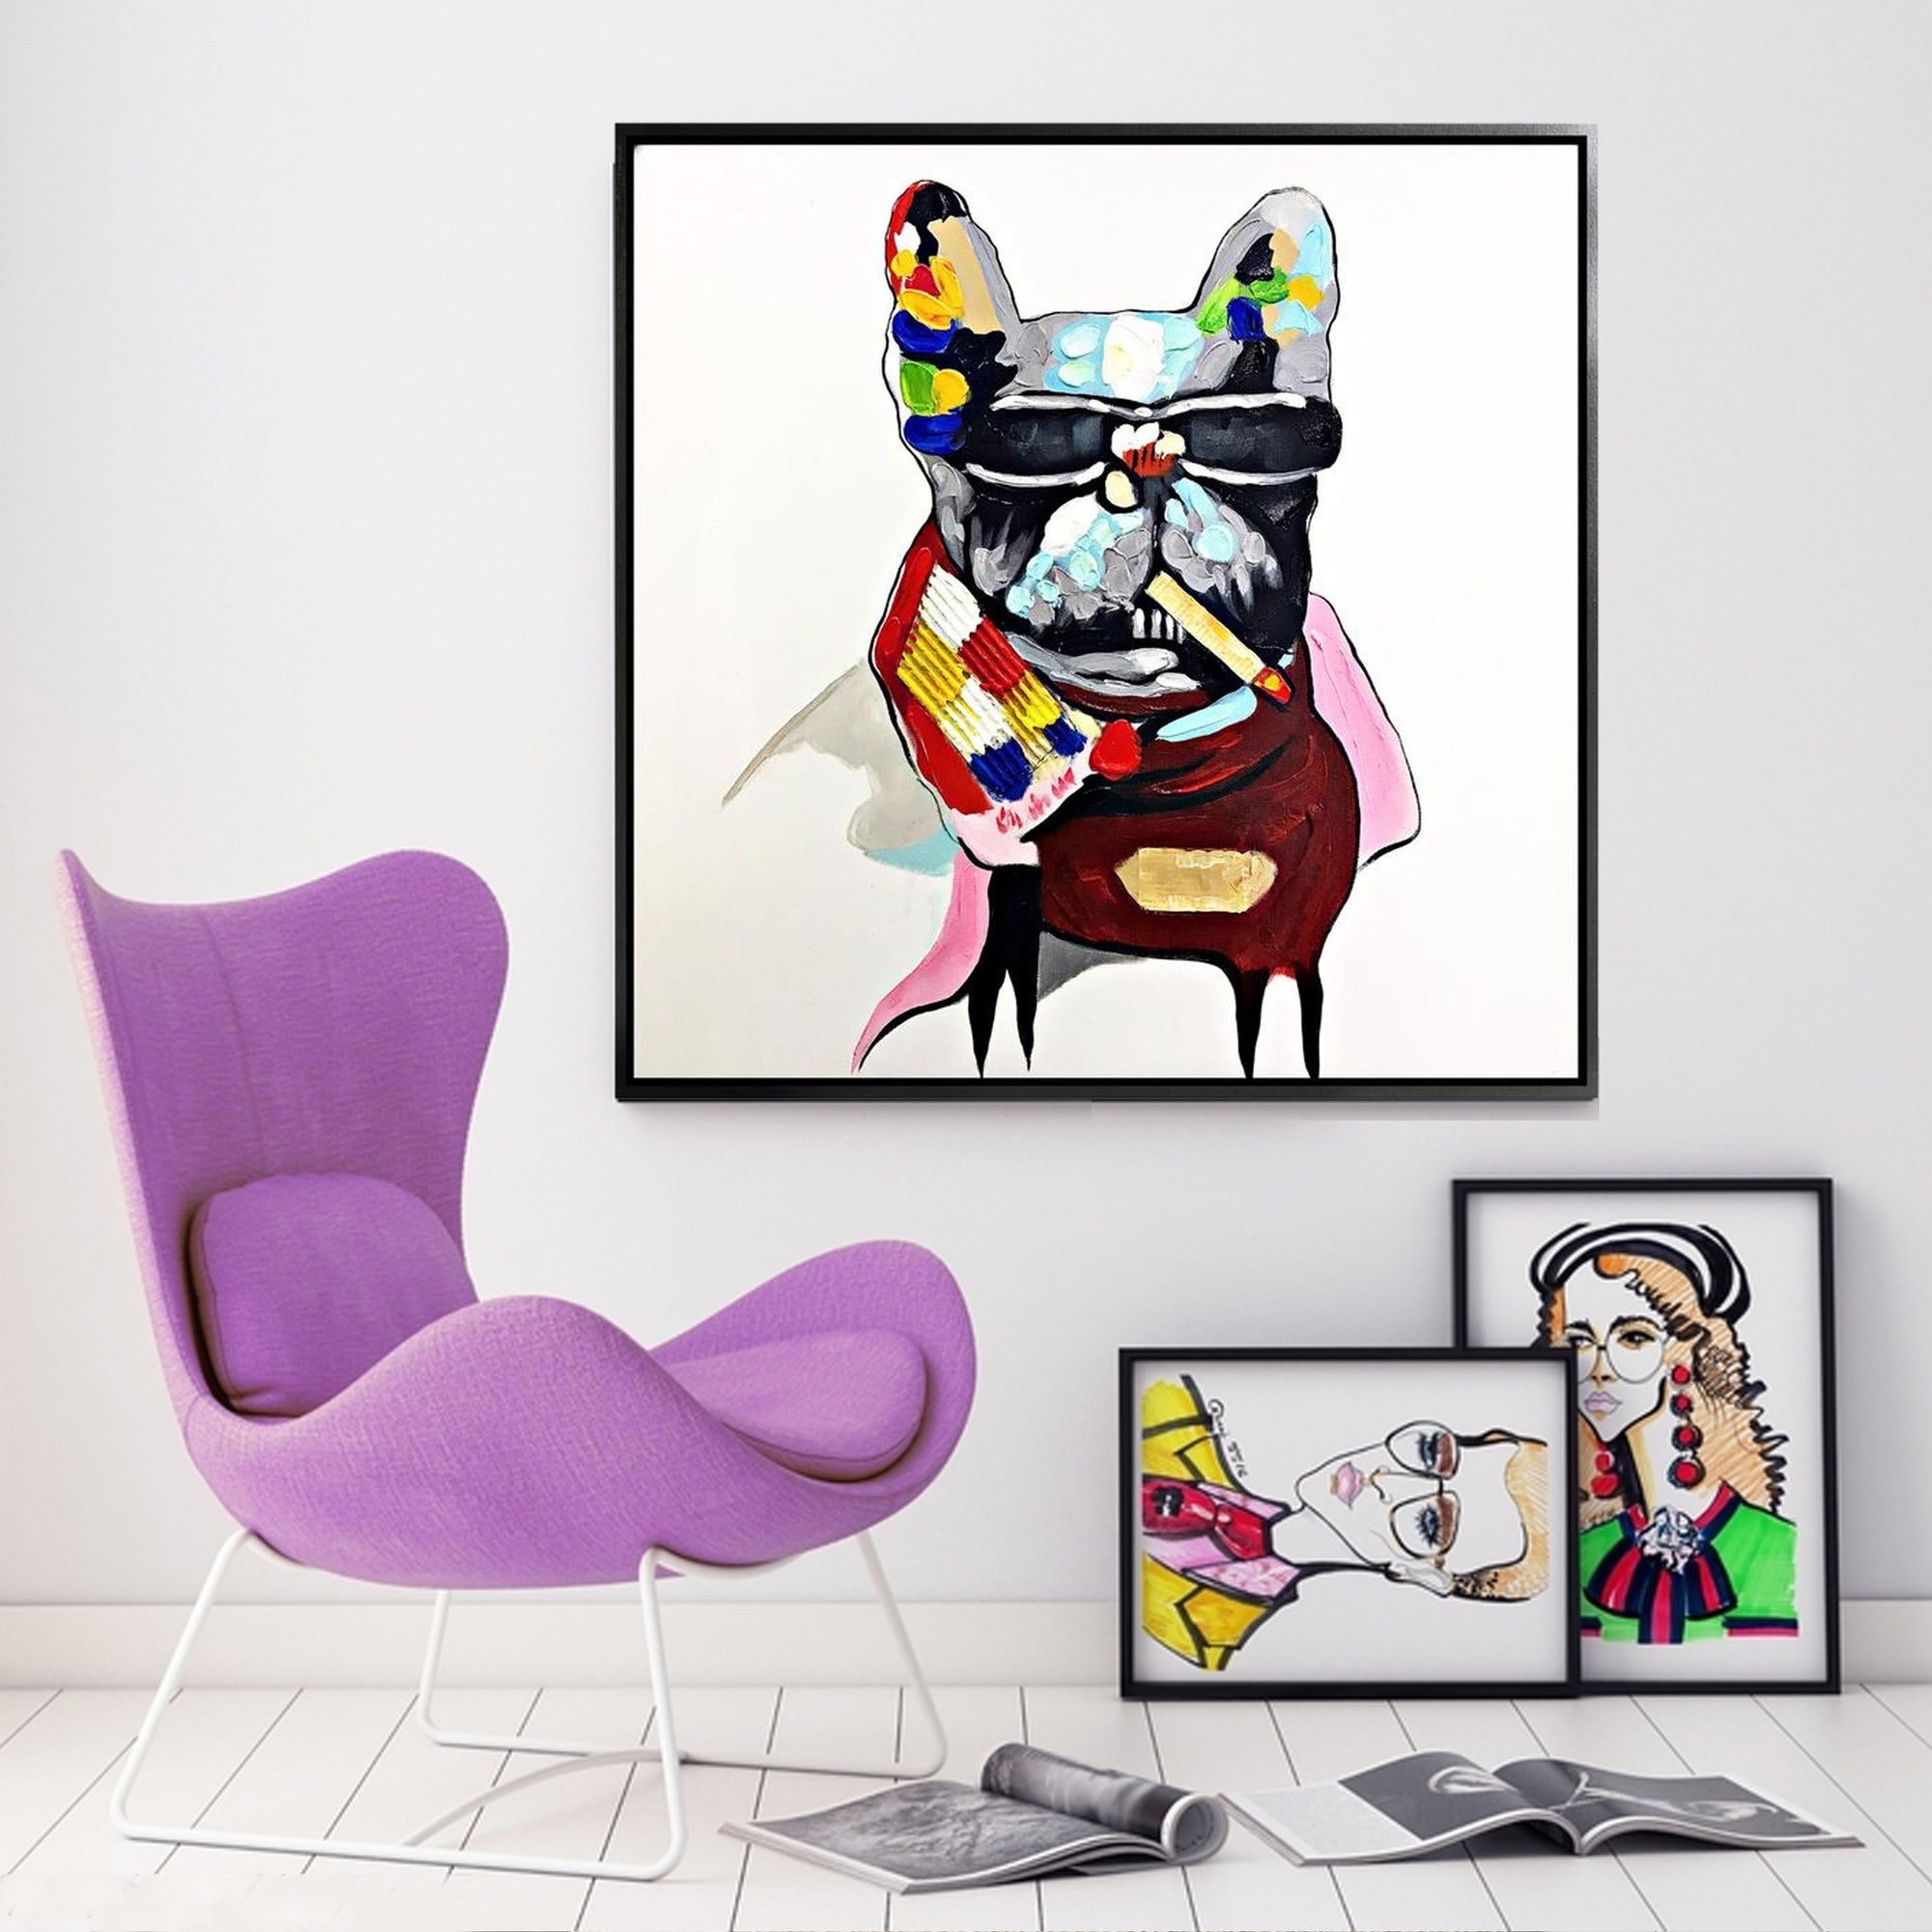 Painting - Handpainted Art Painting With Aluminum Frame 105x105cm PND006